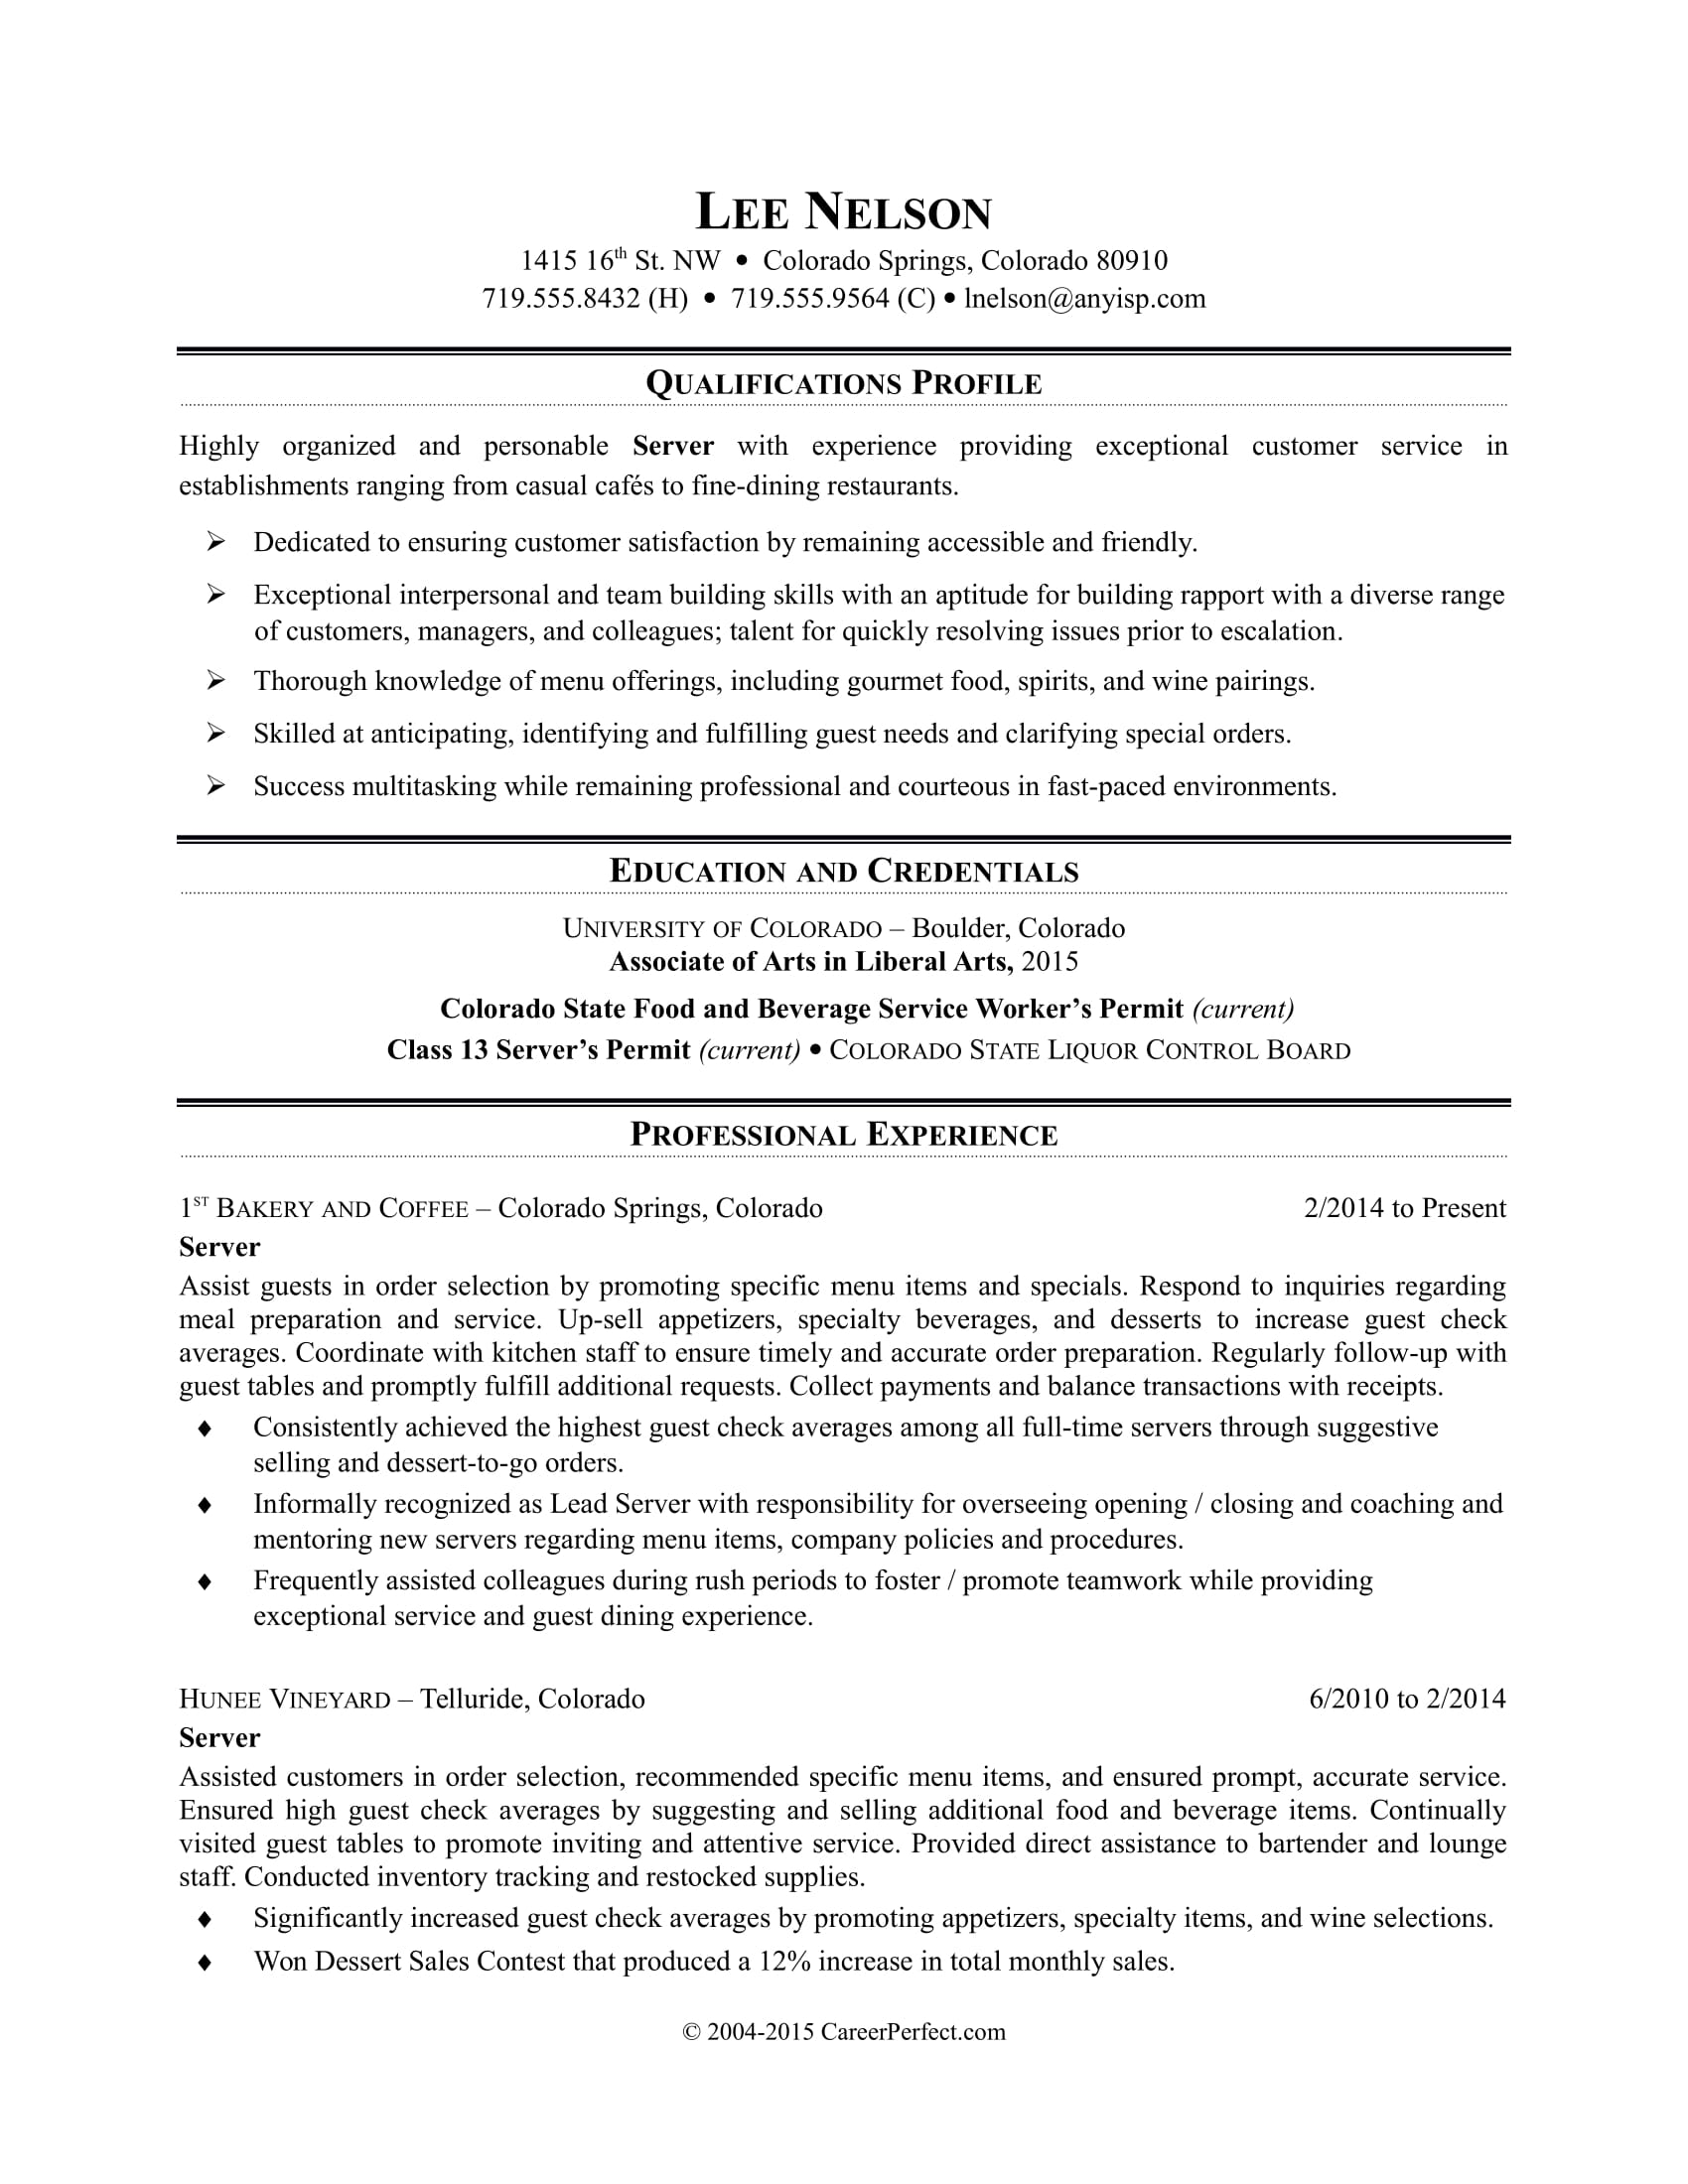 Sample Resume For A Restaurant Server  Sample Food Service Resume